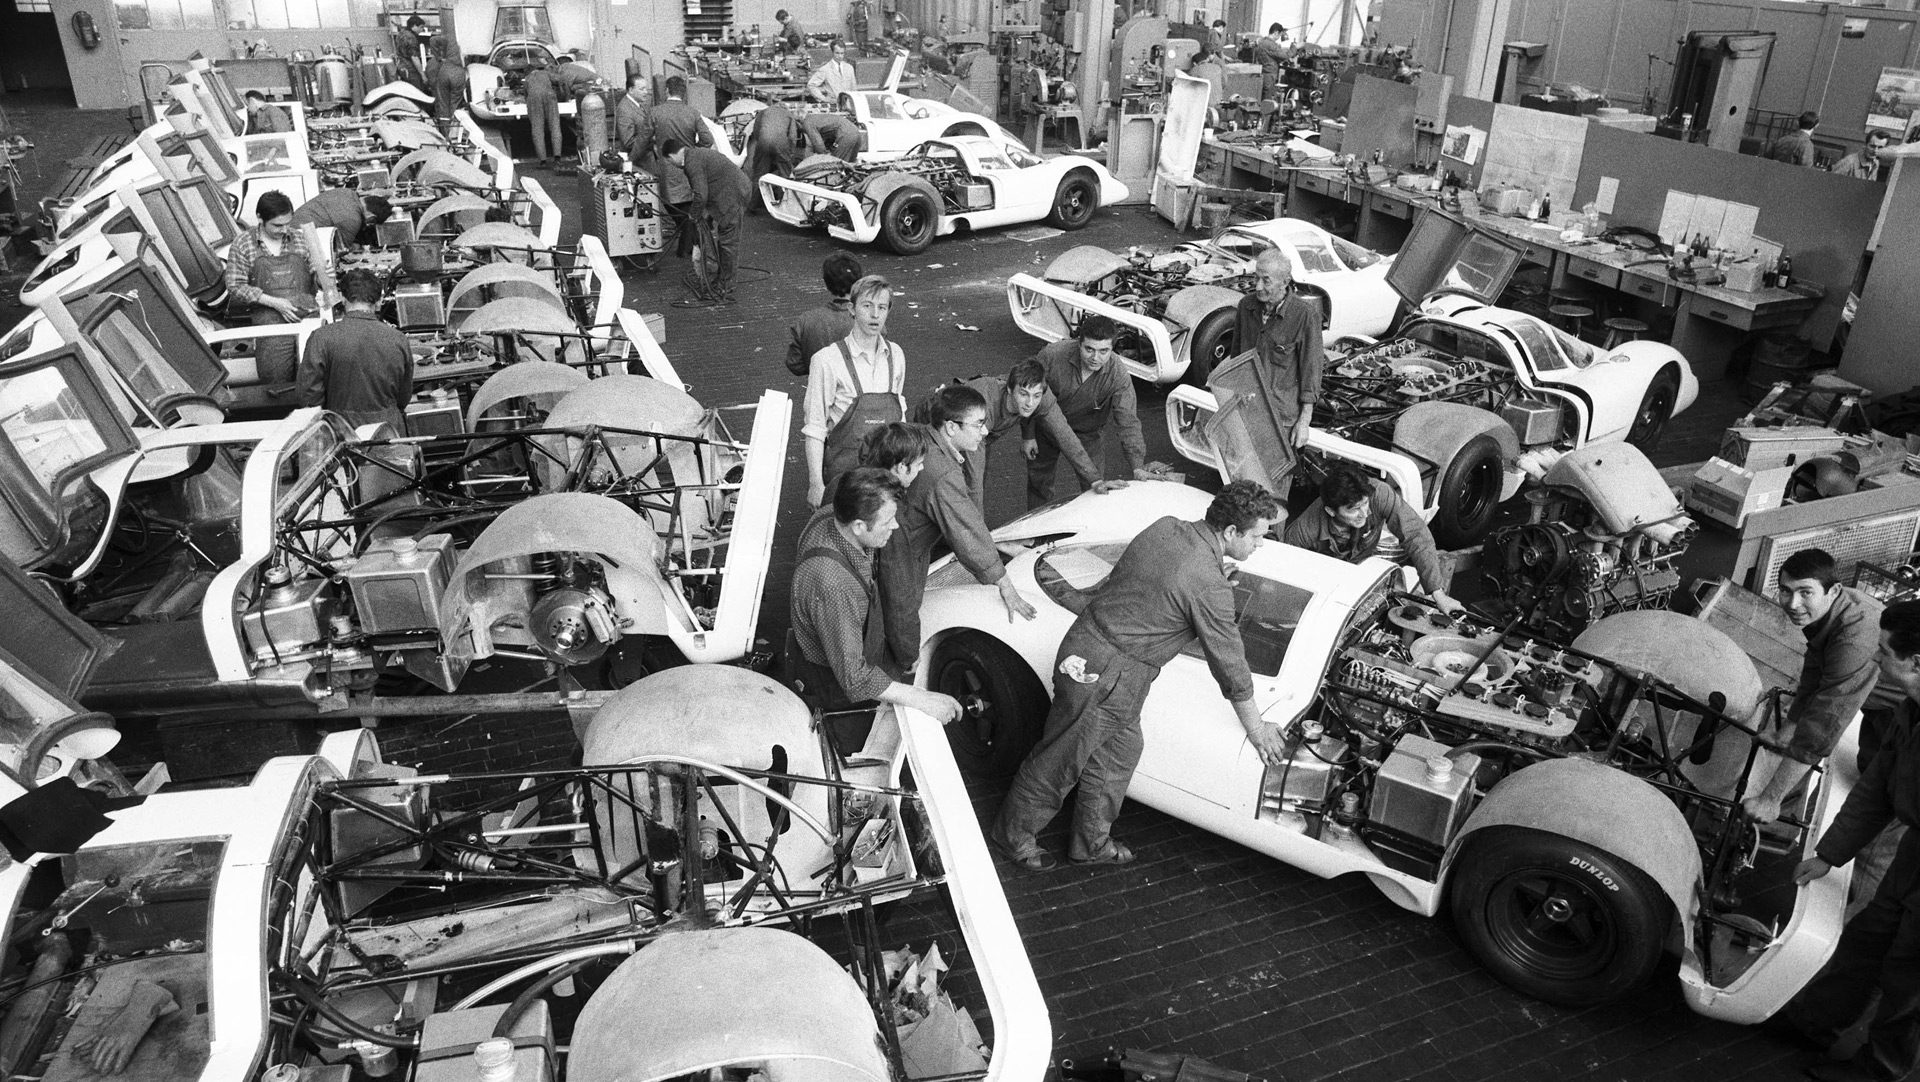 Porsche technicians work on the original 917s.